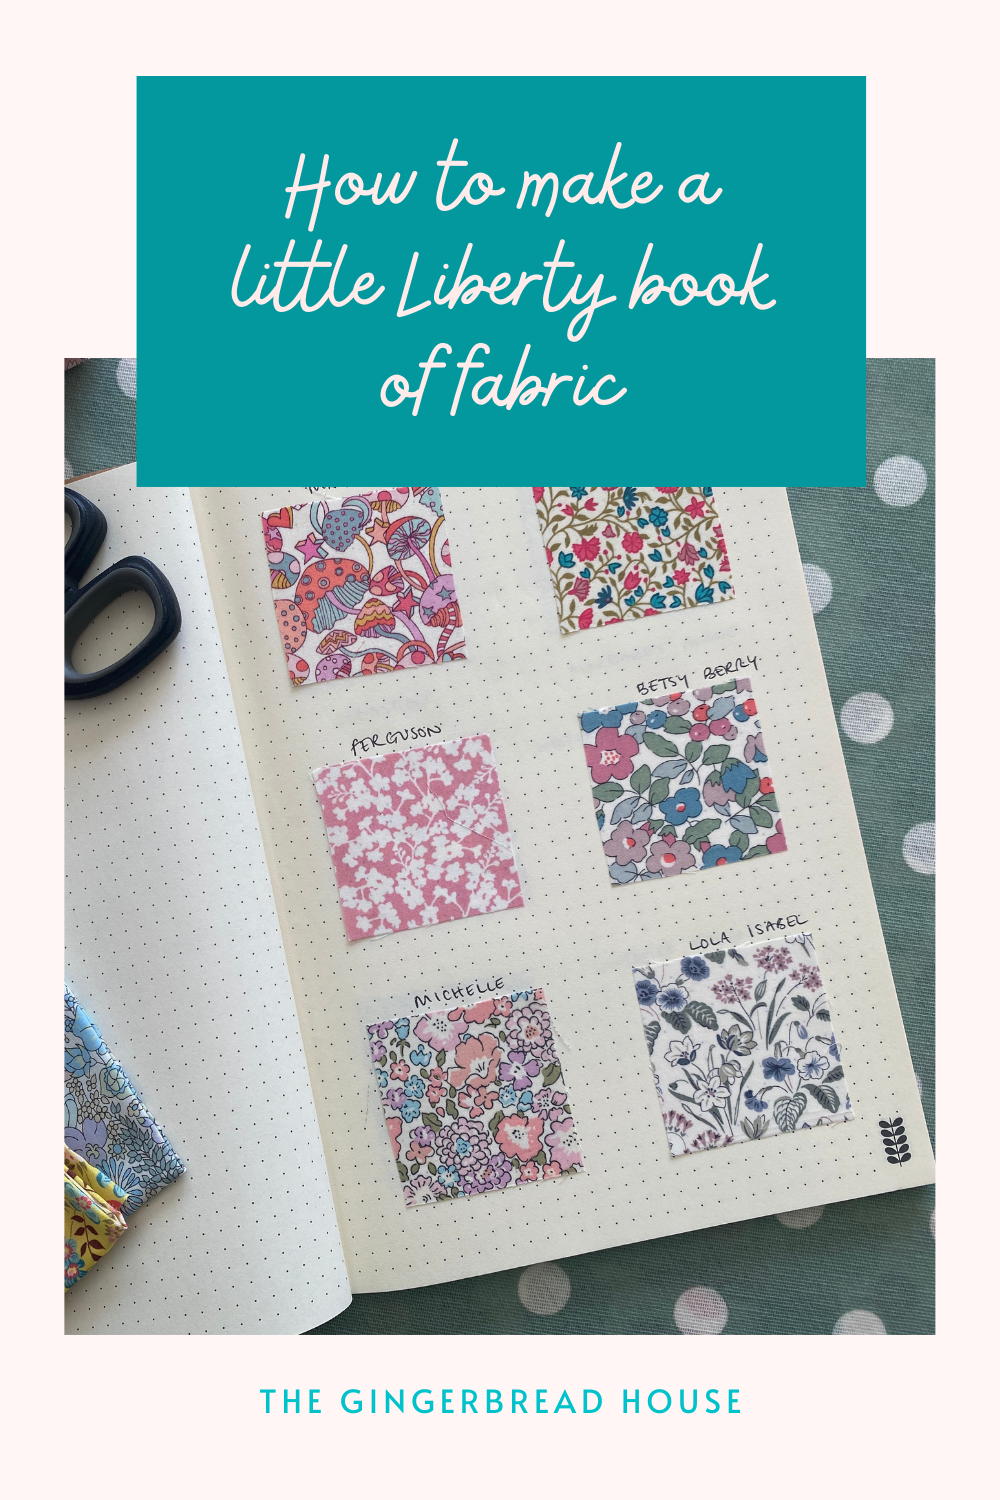 My little Liberty book of fabric